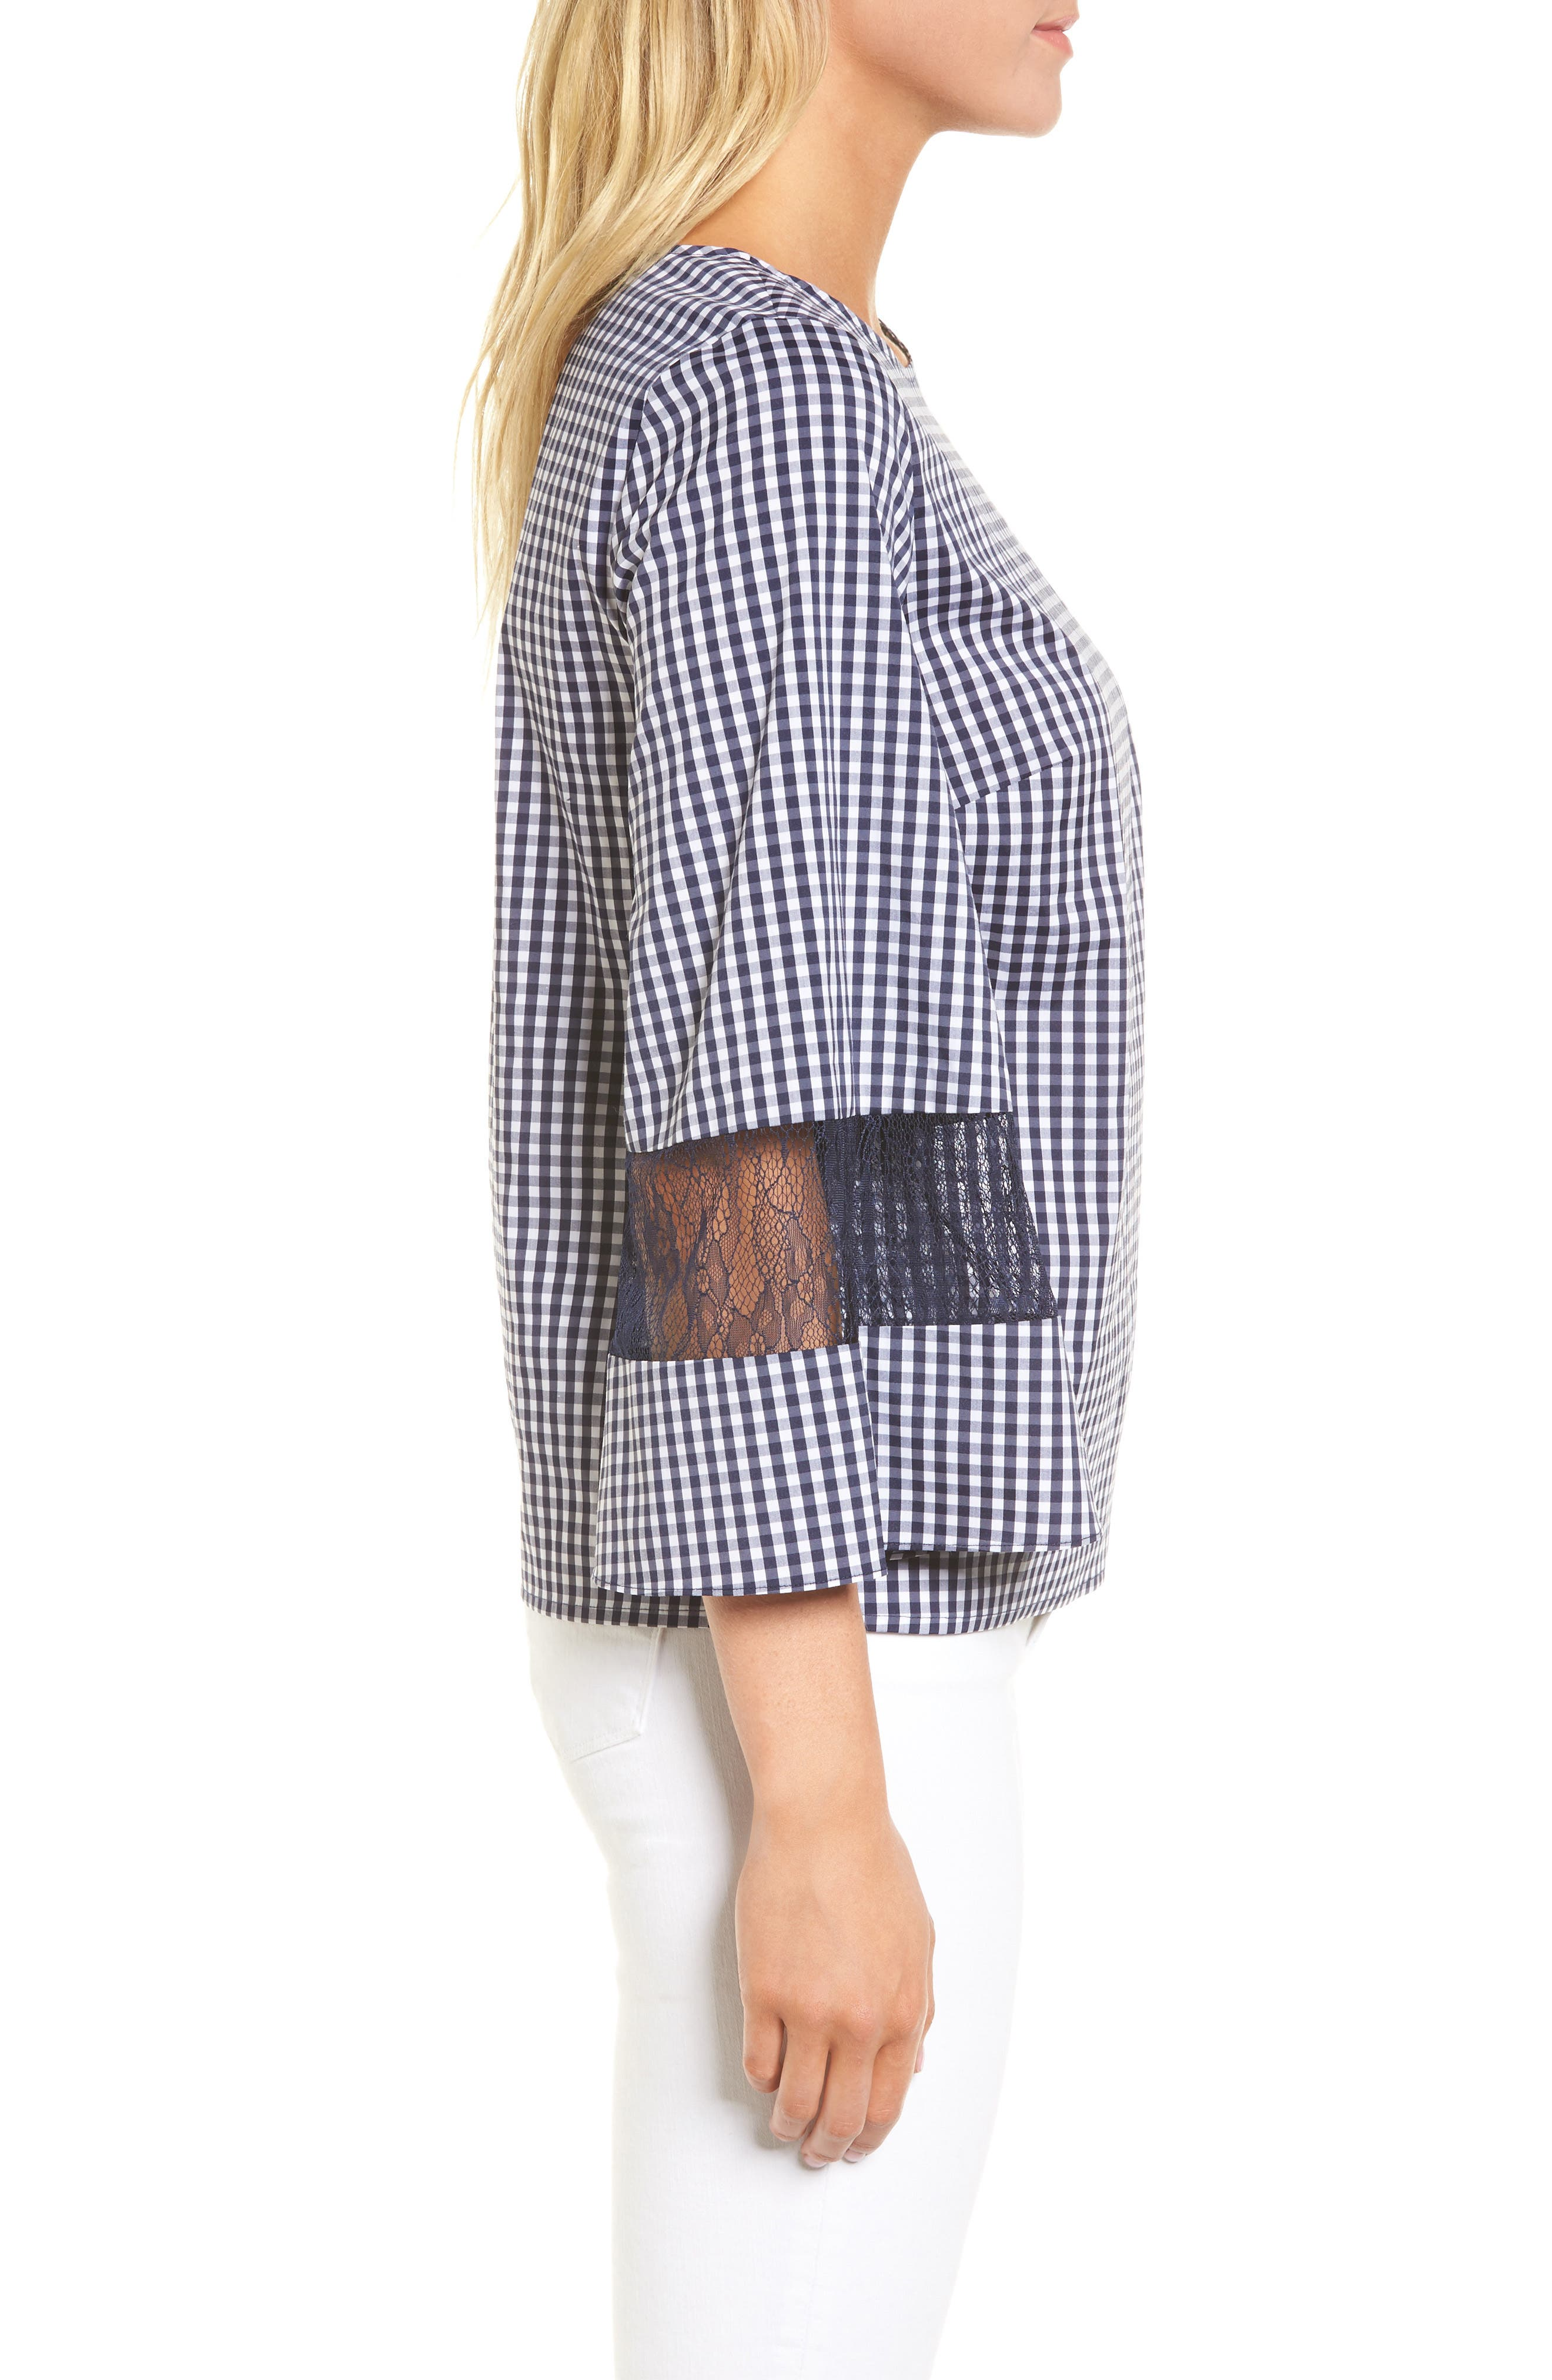 Gingham & Lace Blouse,                             Alternate thumbnail 3, color,                             Navy Evening- White Gingham